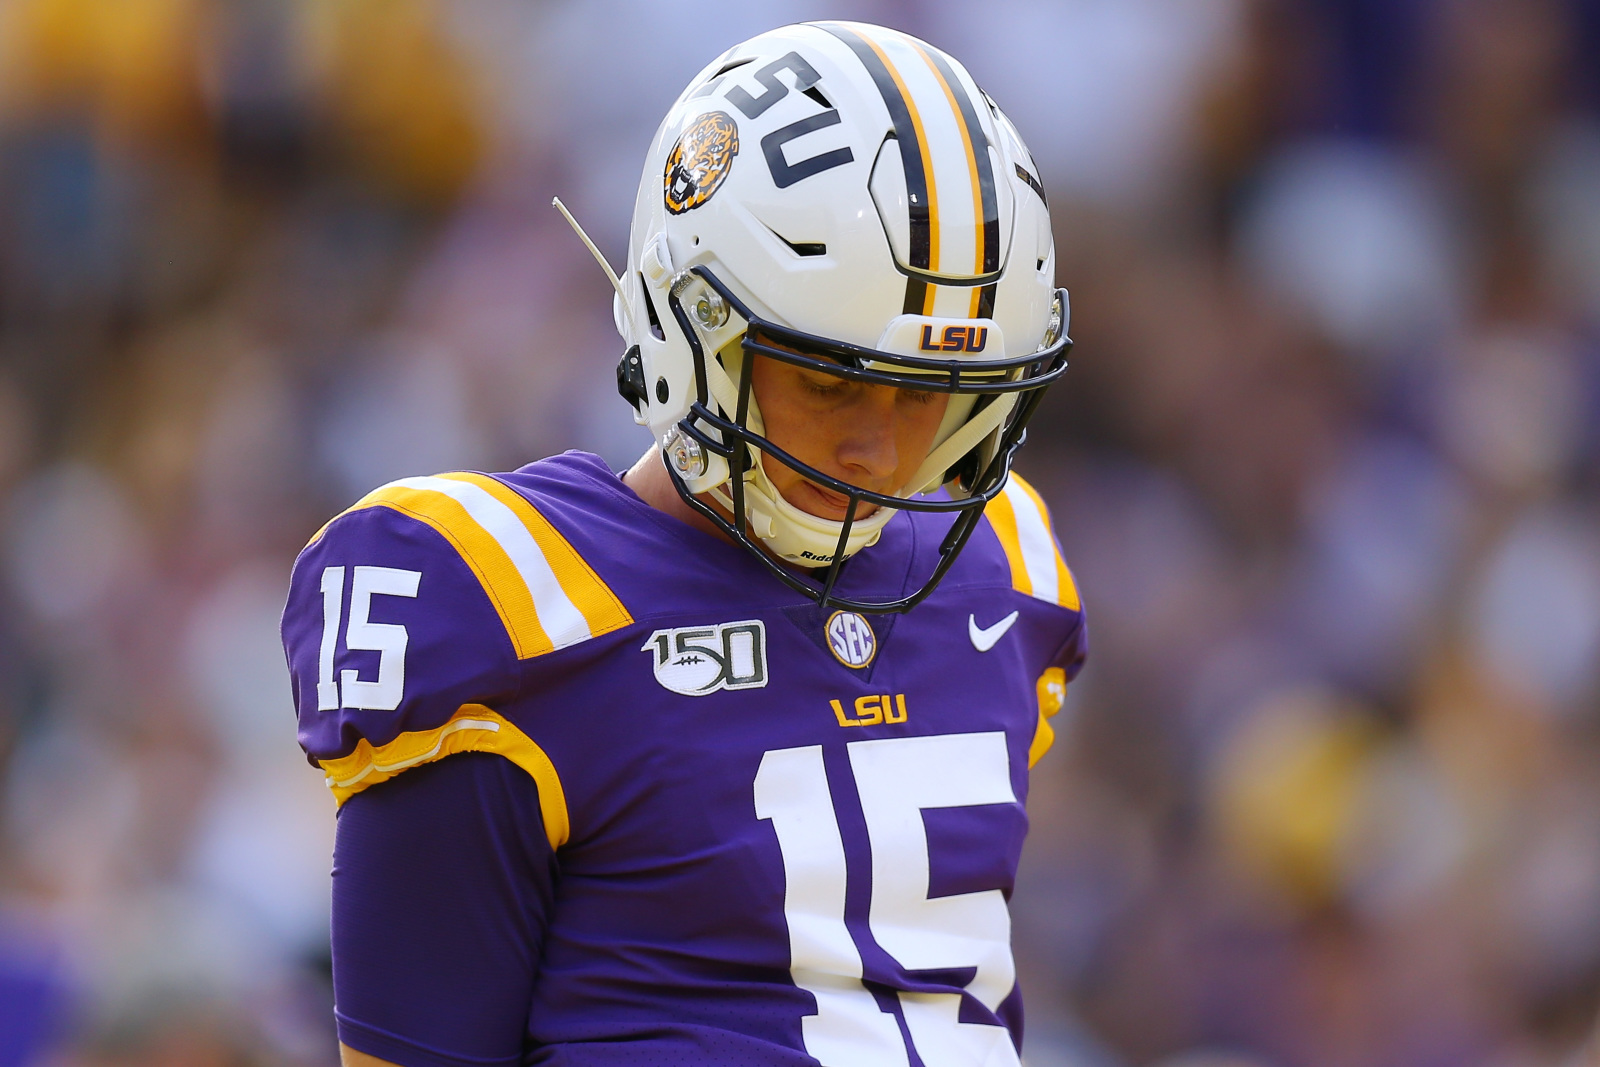 LSU football will enter the 2020 season in an unusual position